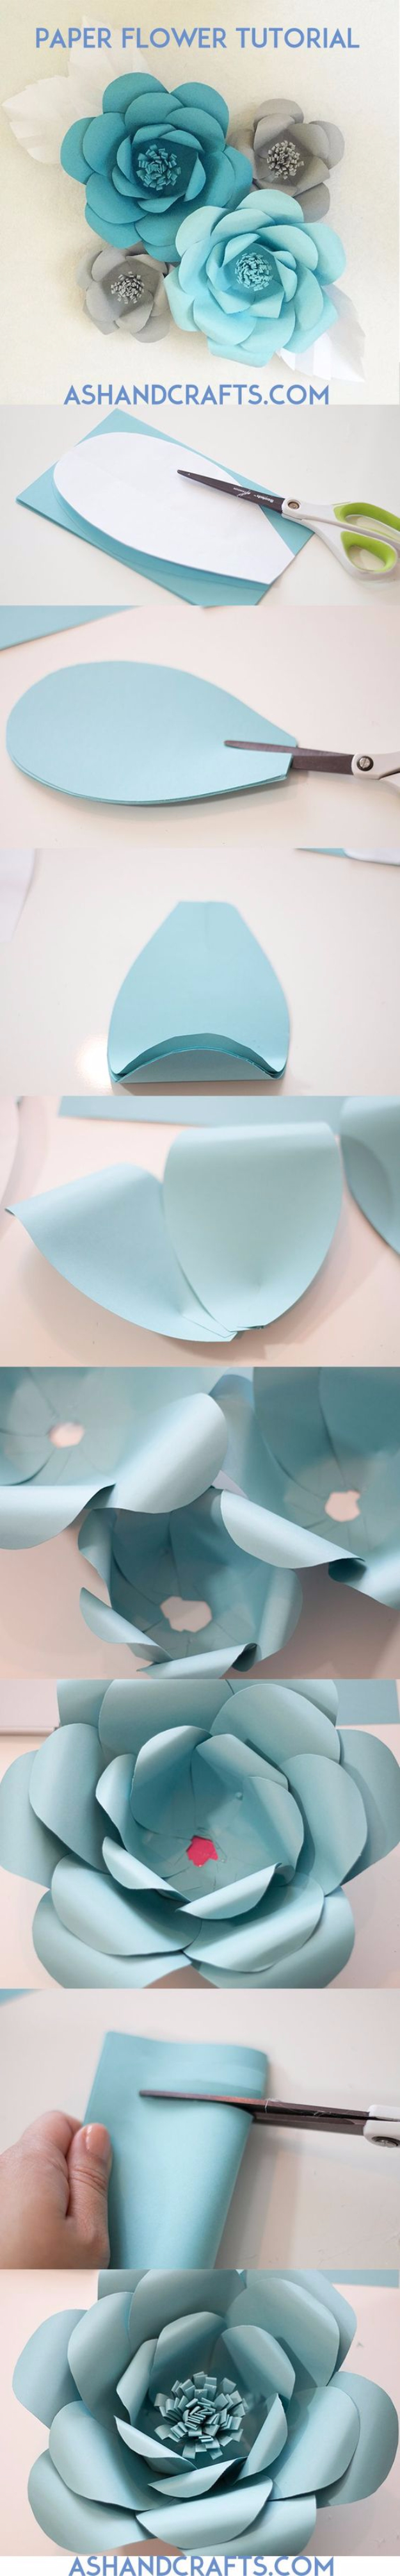 39 Easy DIY Party Decorations - Paper Flower Backdrop - Quick And Cheap Party Decors, Easy Ideas For DIY Party Decor, Birthday Decorations, Budget Do It Yourself Party Decorations #diyparties #party #partydecor #parties